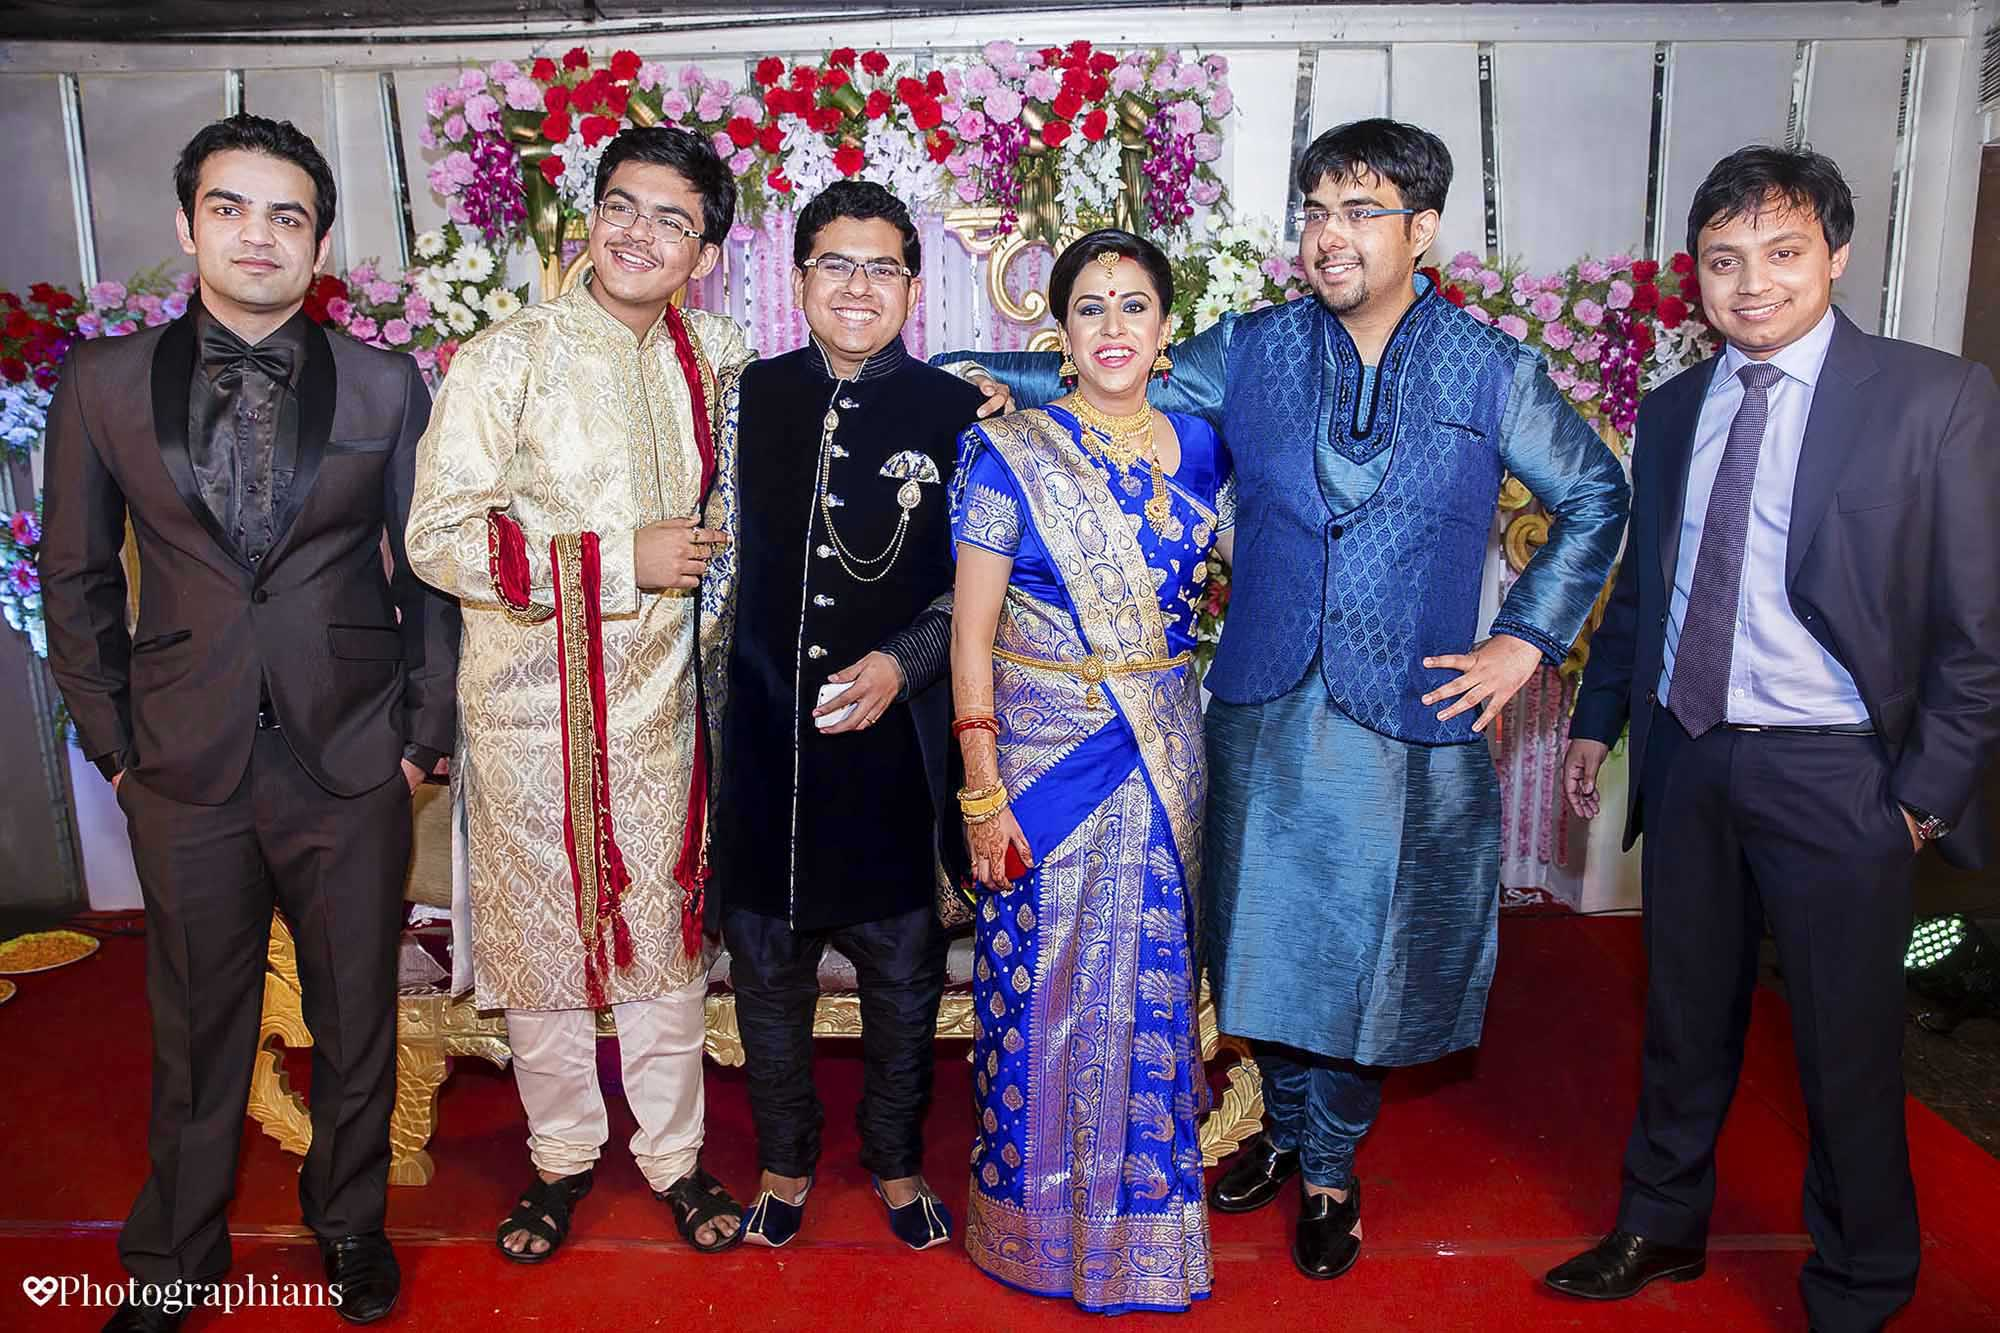 Bengali_Wedding_Photography_Kolkata_Photographians_189